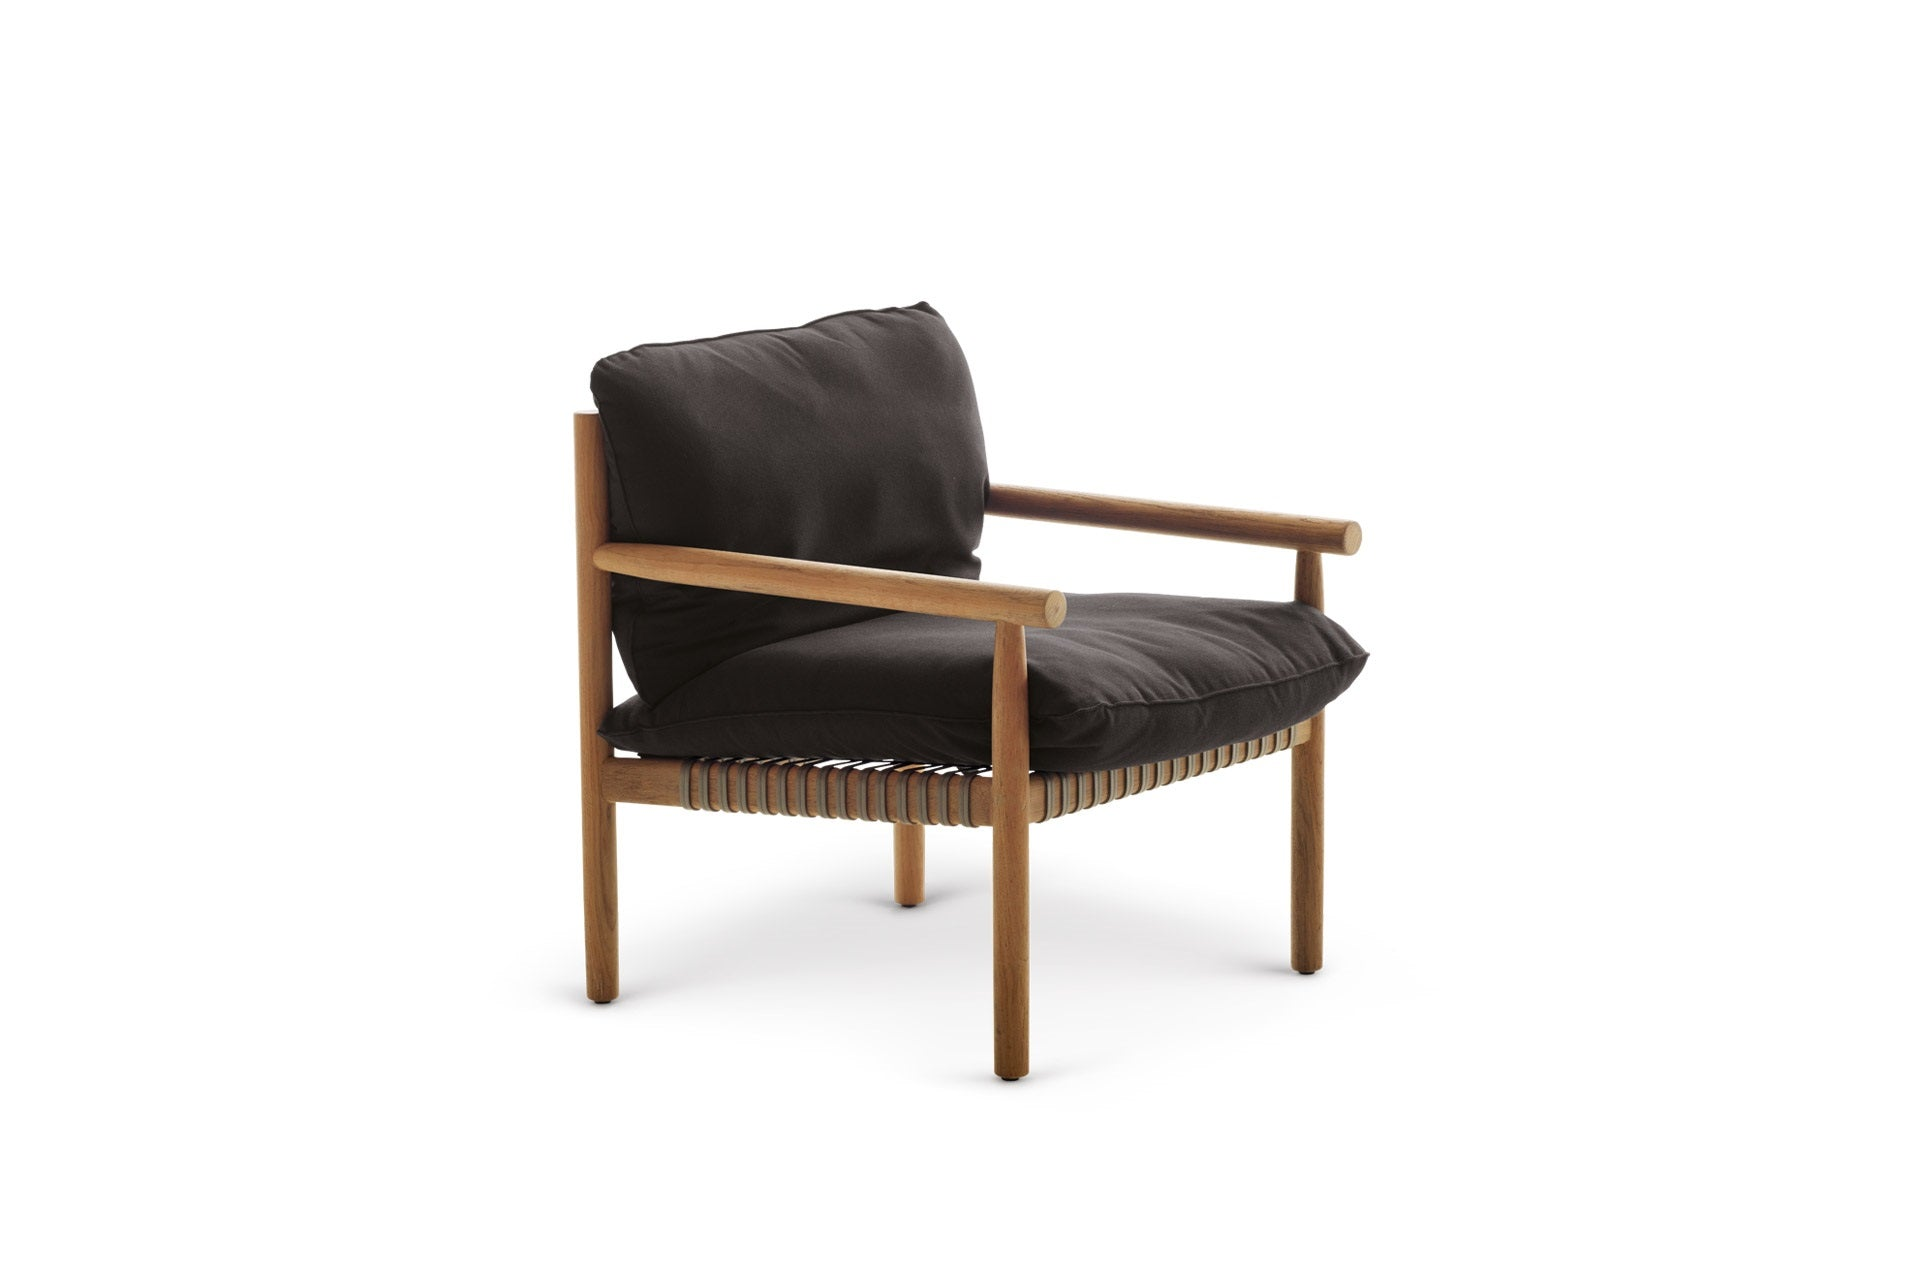 Dedon De tibbo lounge chair occassional chairs and ottomans by dedon at the